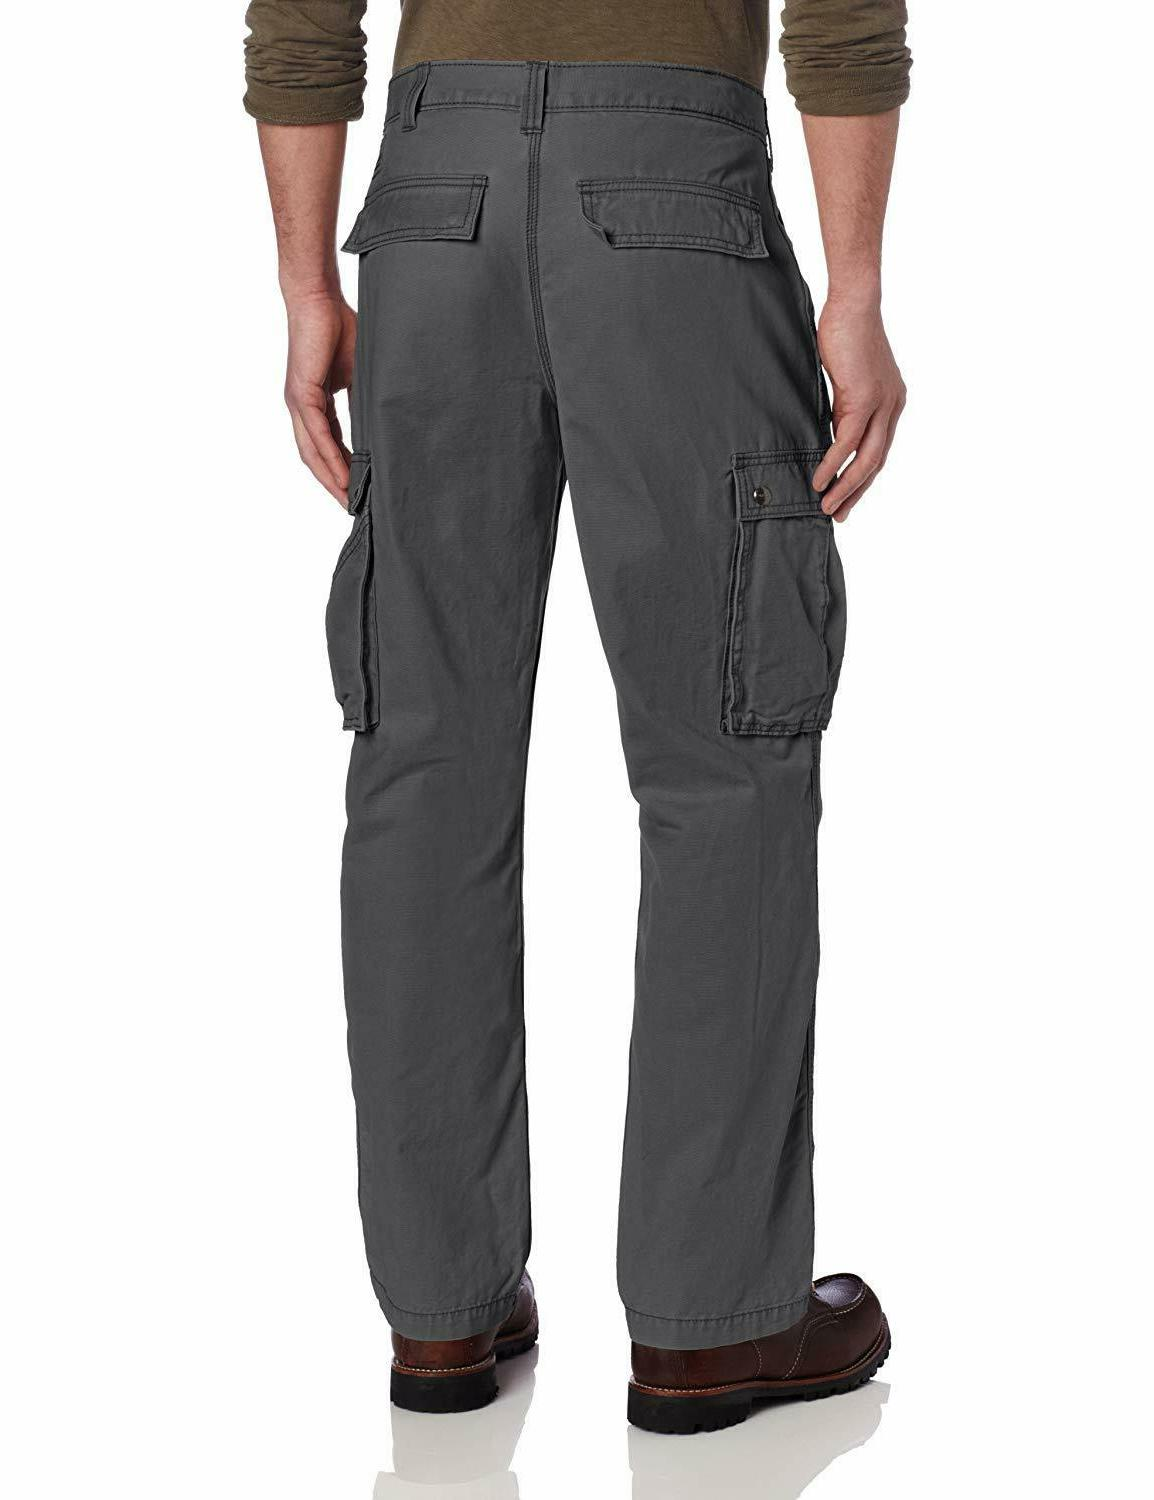 Carhartt Cargo Pant in Relaxed